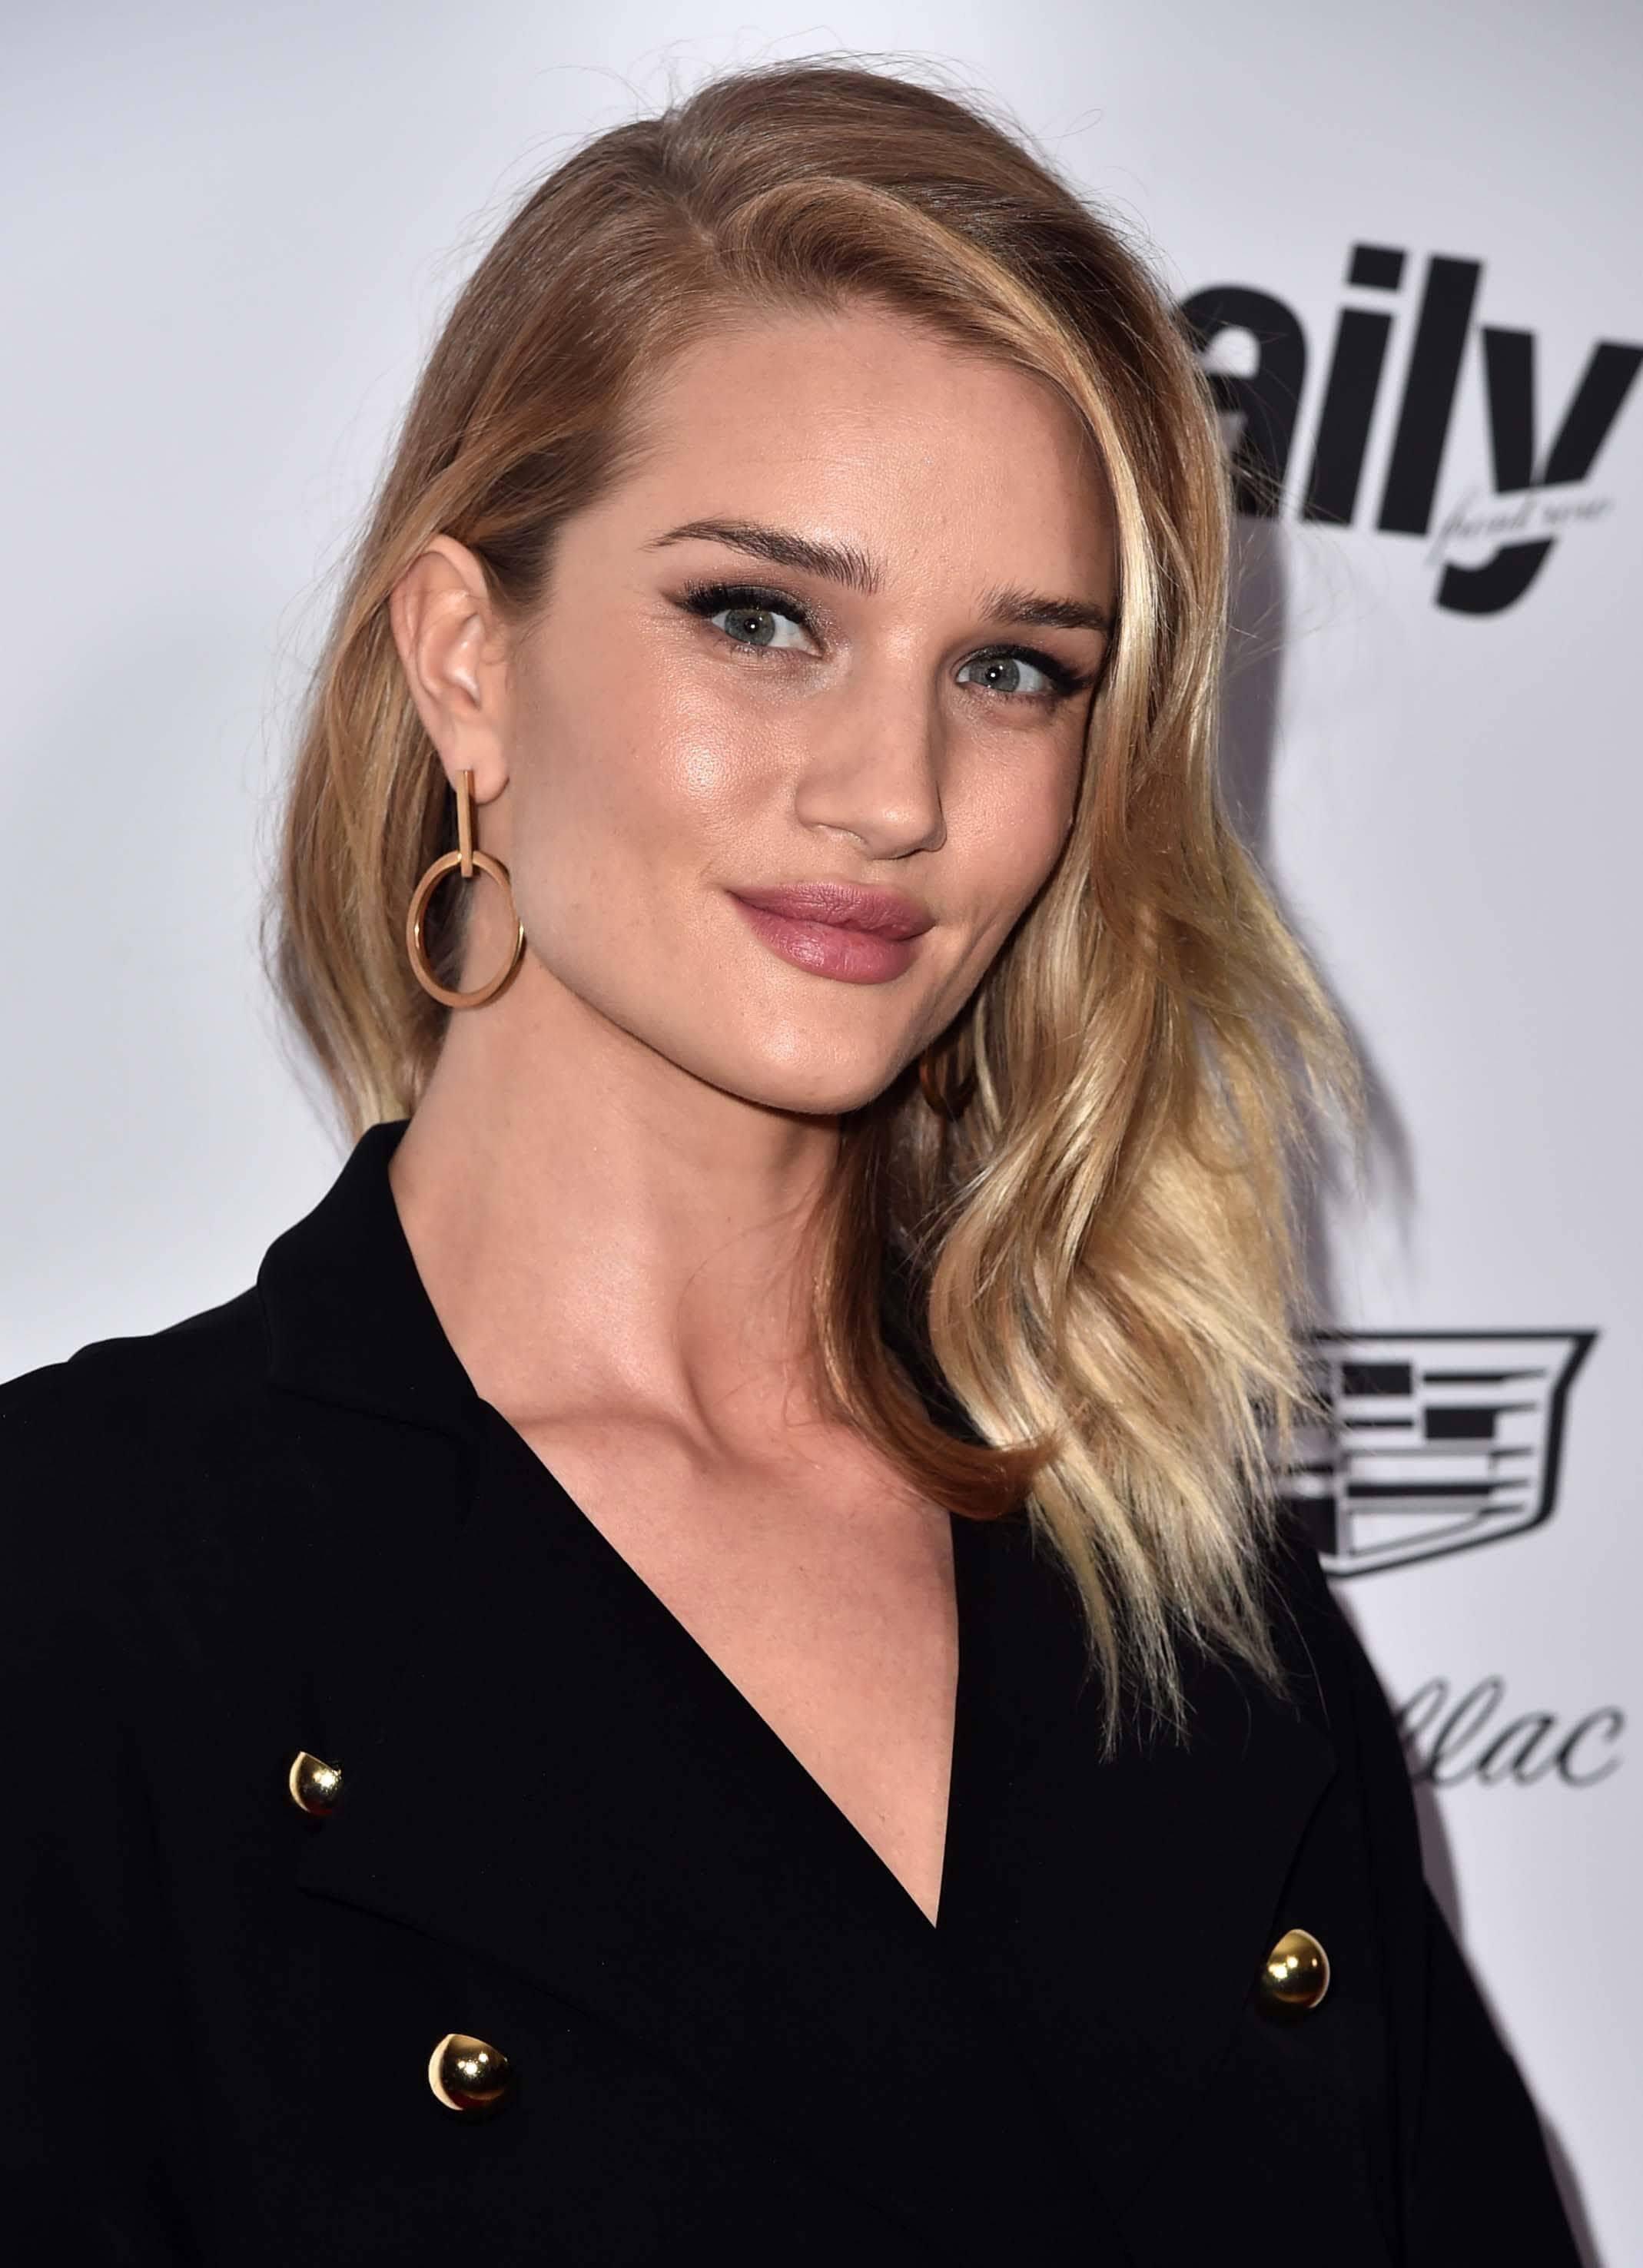 medium-hairstyles-Rosie-Huntington-whiteley